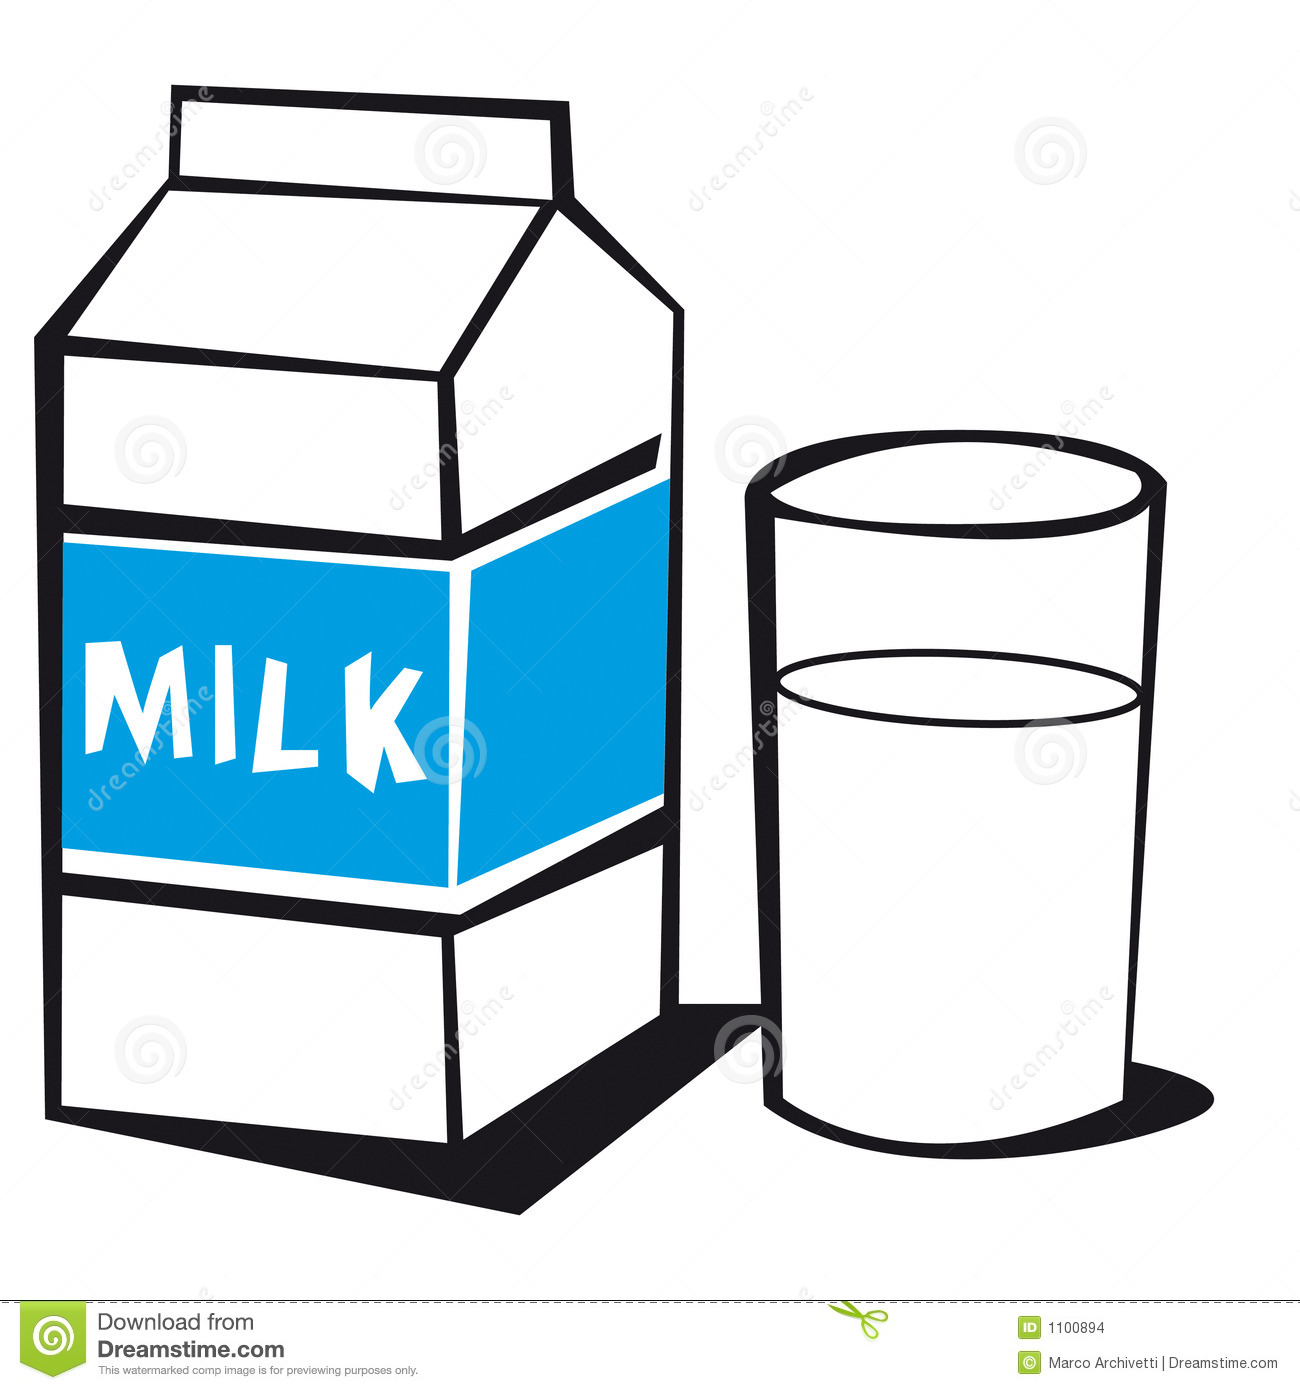 Milk clipart #13, Download drawings